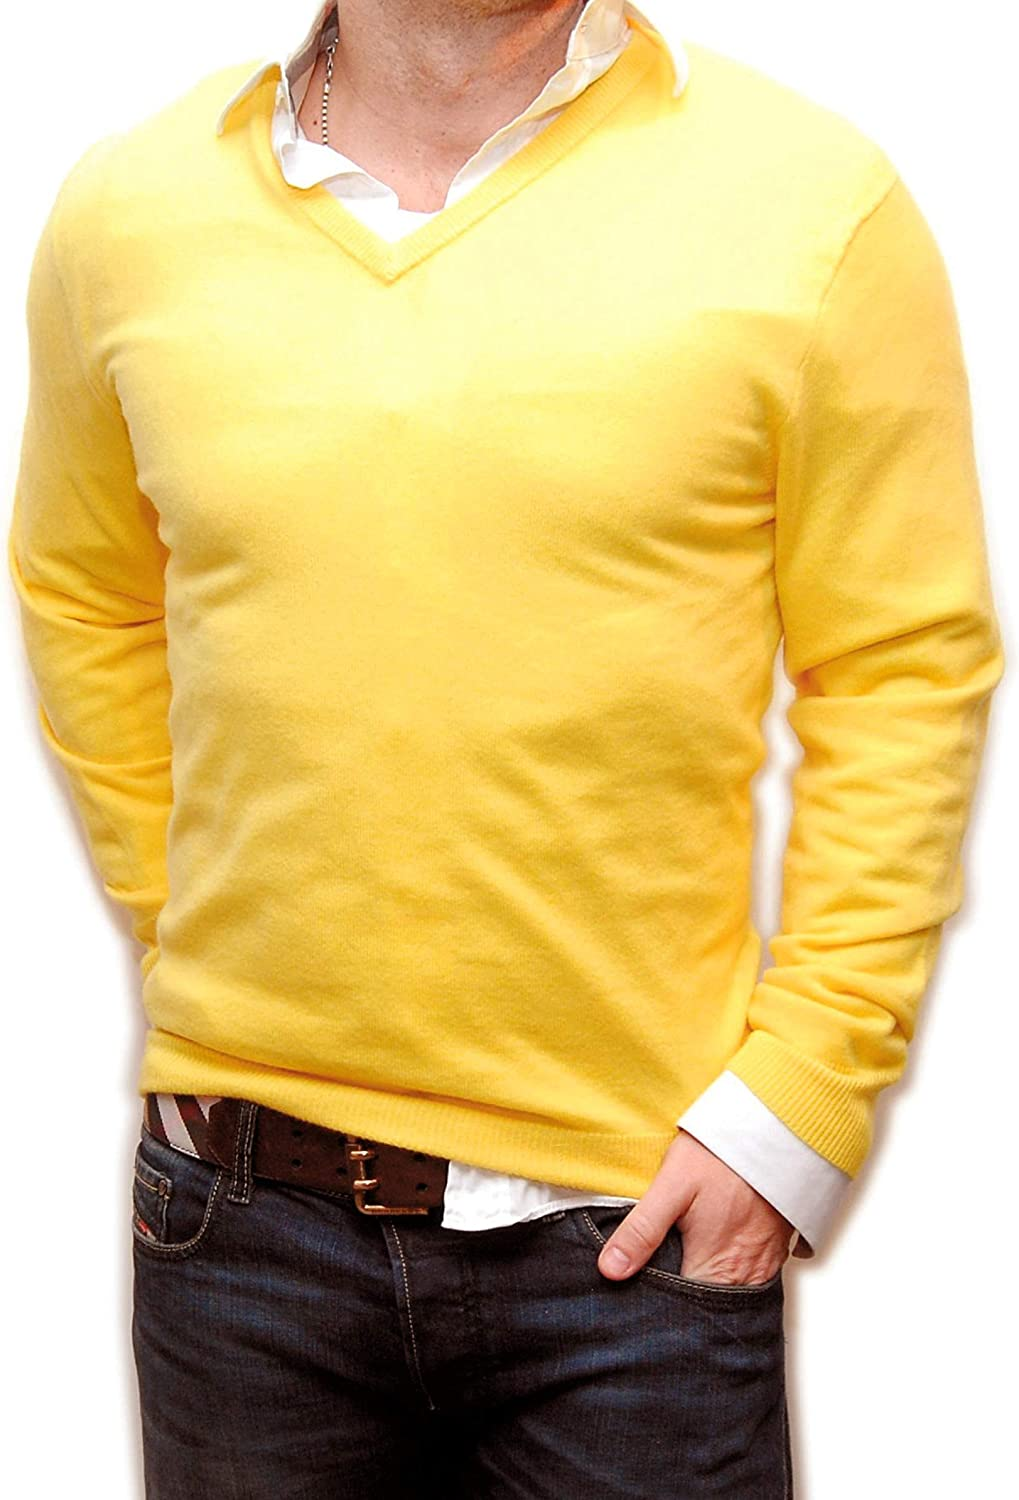 Ralph Lauren Polo Mens 100% Cashmere V-Neck Pullover Sweater Canary Yellow XS